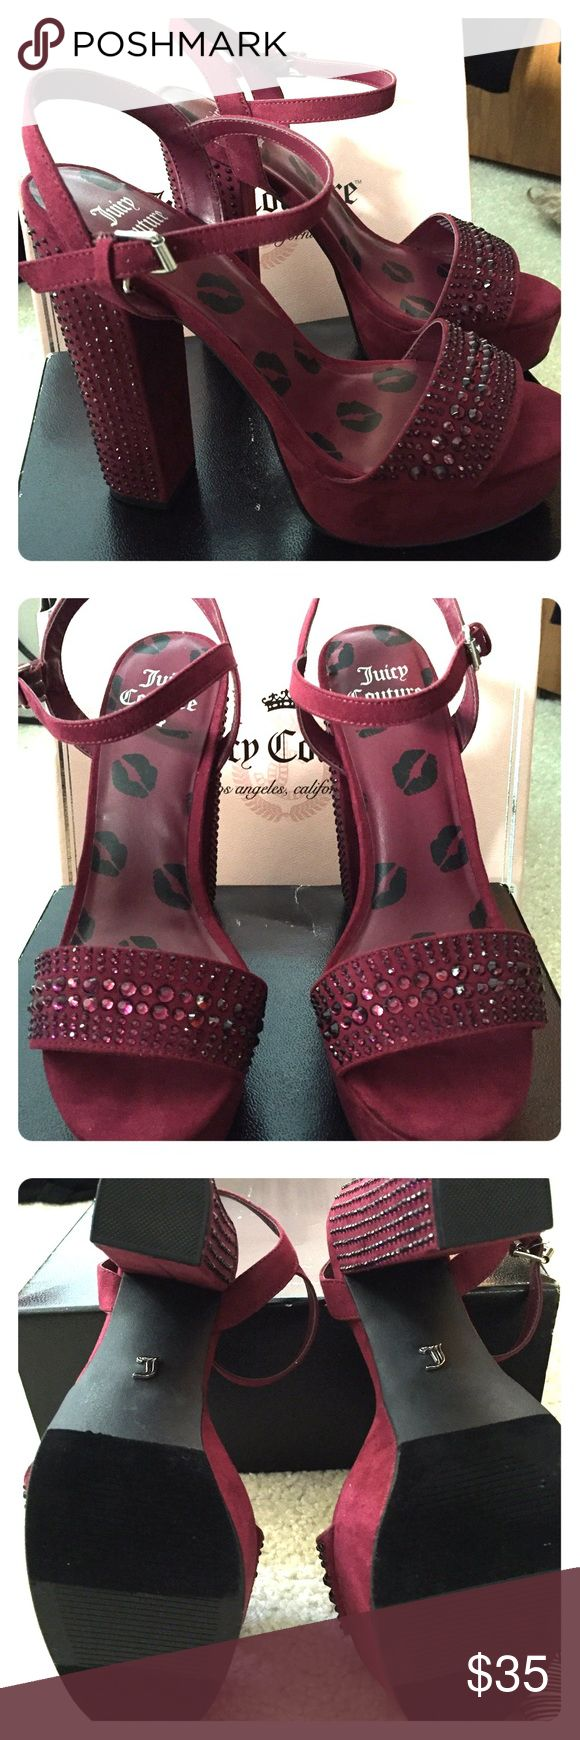 Juicy Coutore Heels Juicy Couture Heels. Studded Wine color Heels. Never worn. Comes with box. Juicy Couture Shoes Heels